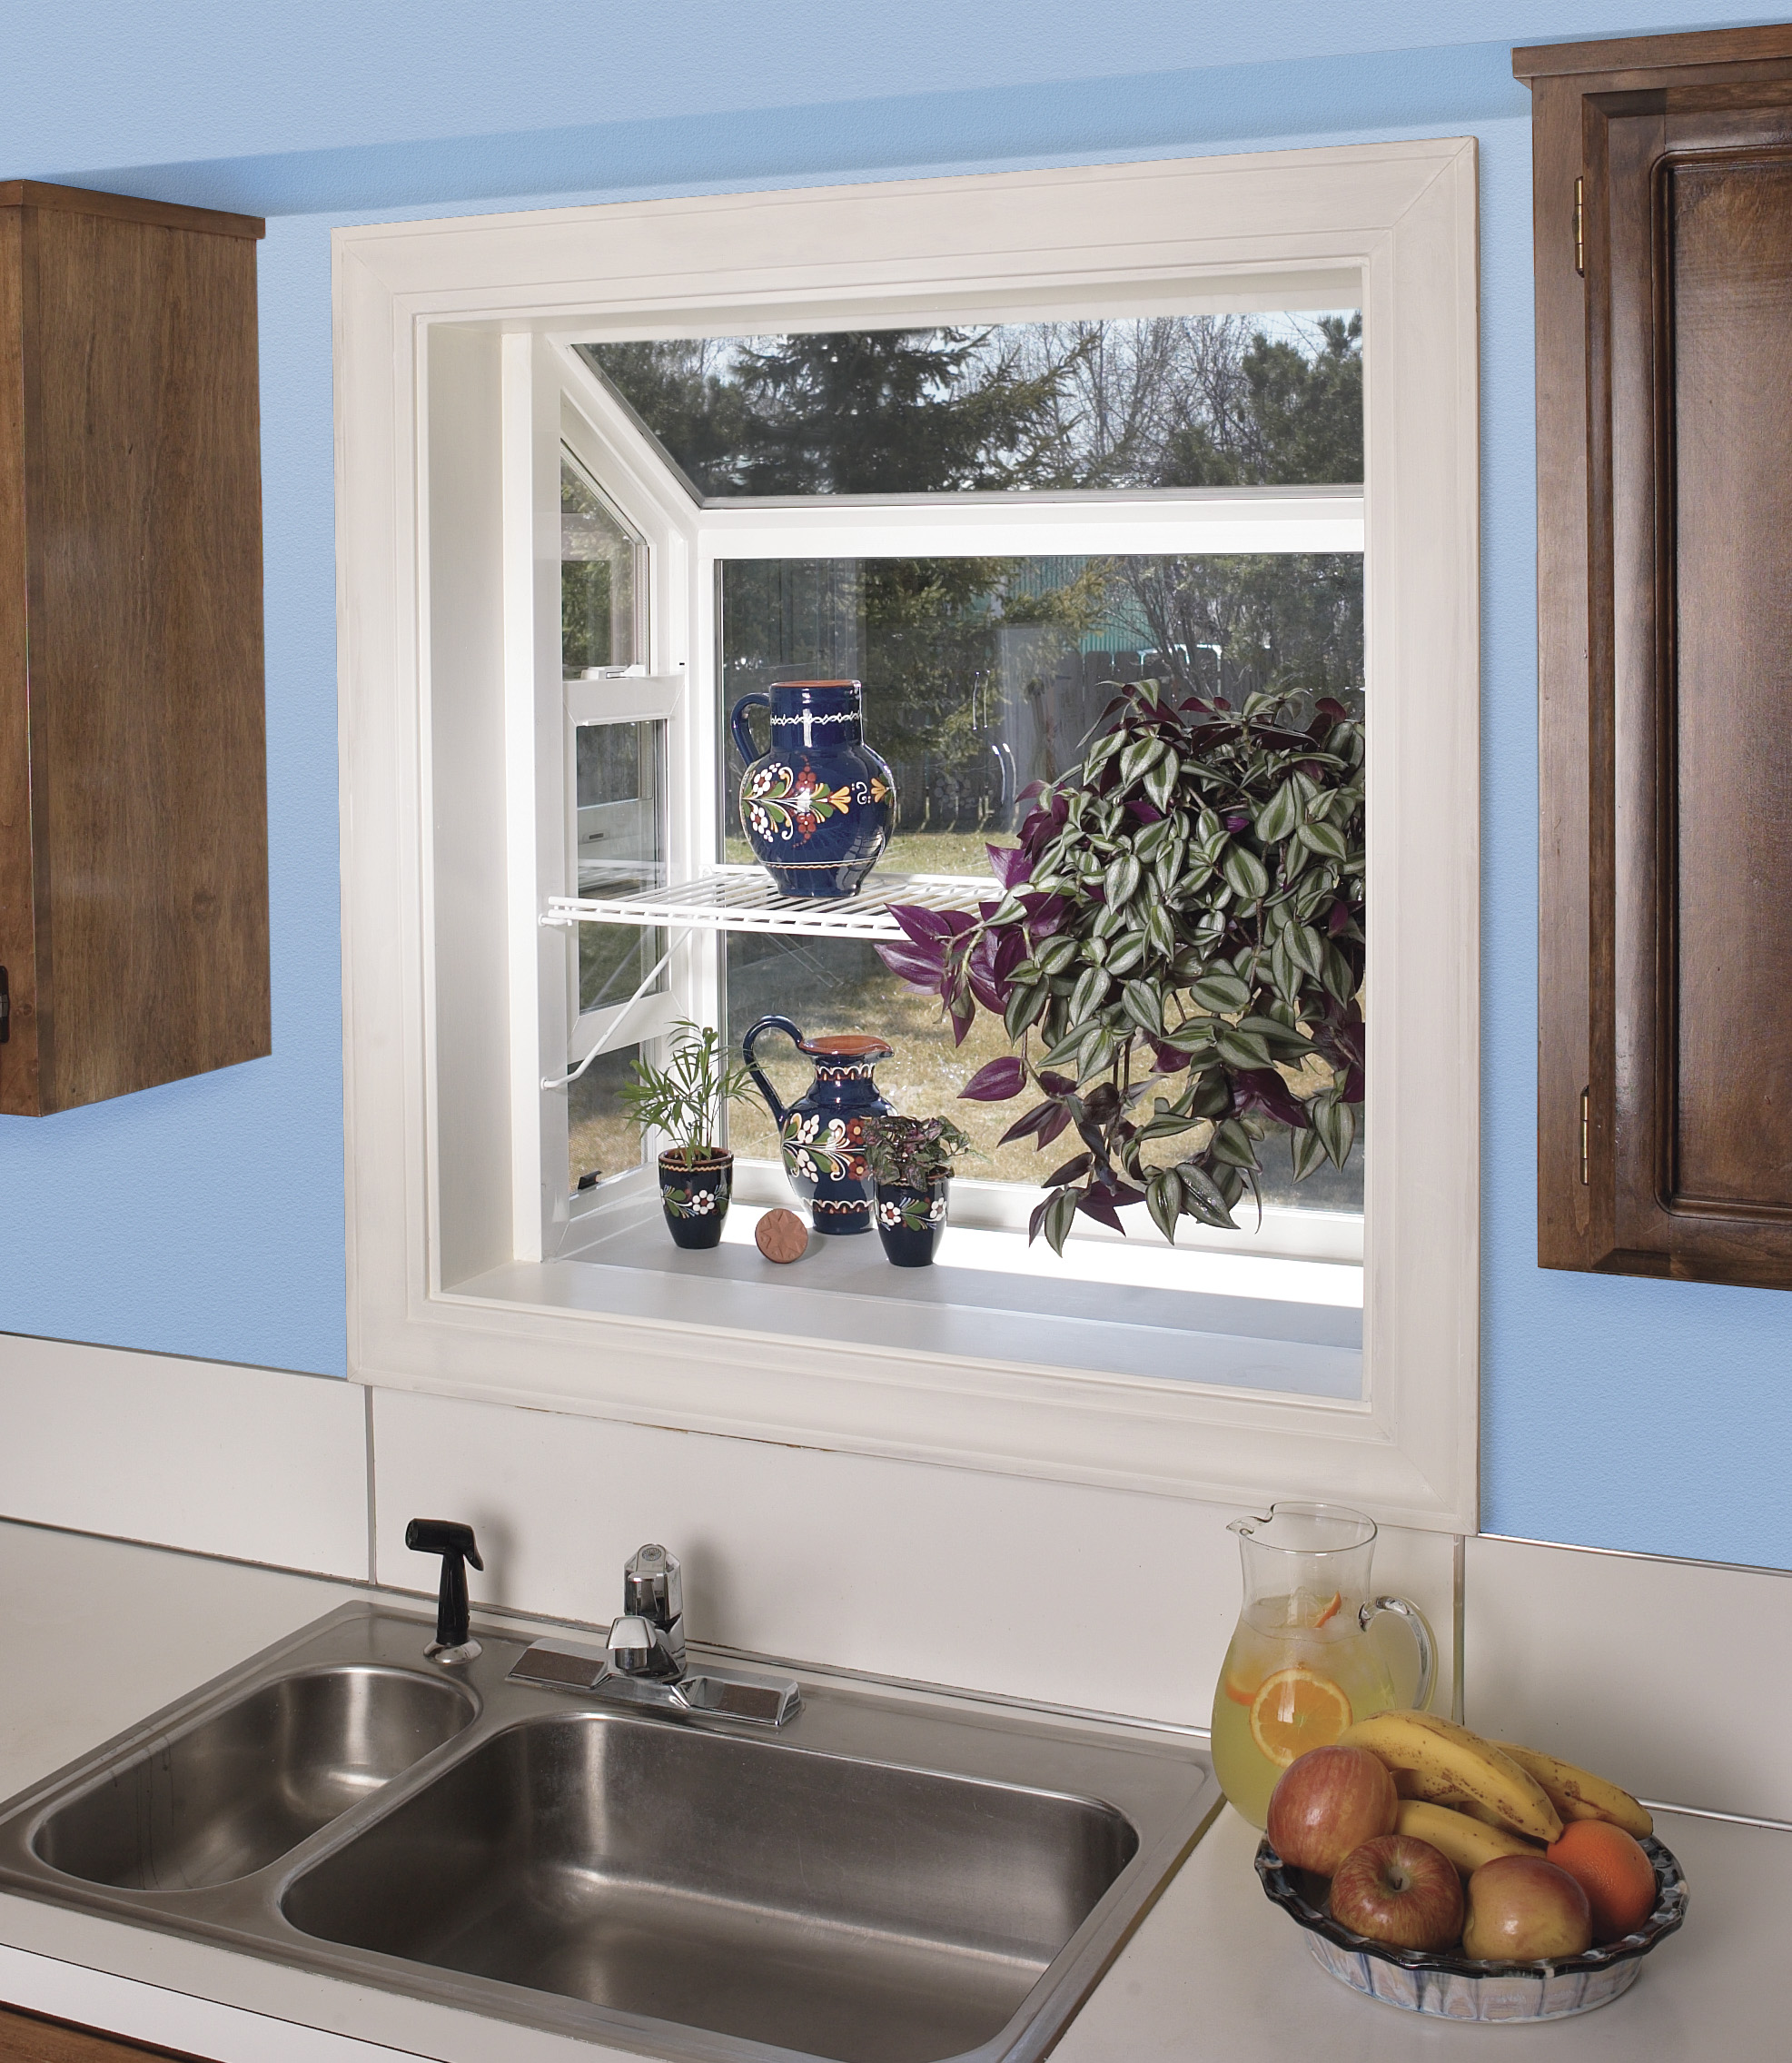 How to decorate garden windows for kitchens so that the for House plans with kitchen sink window